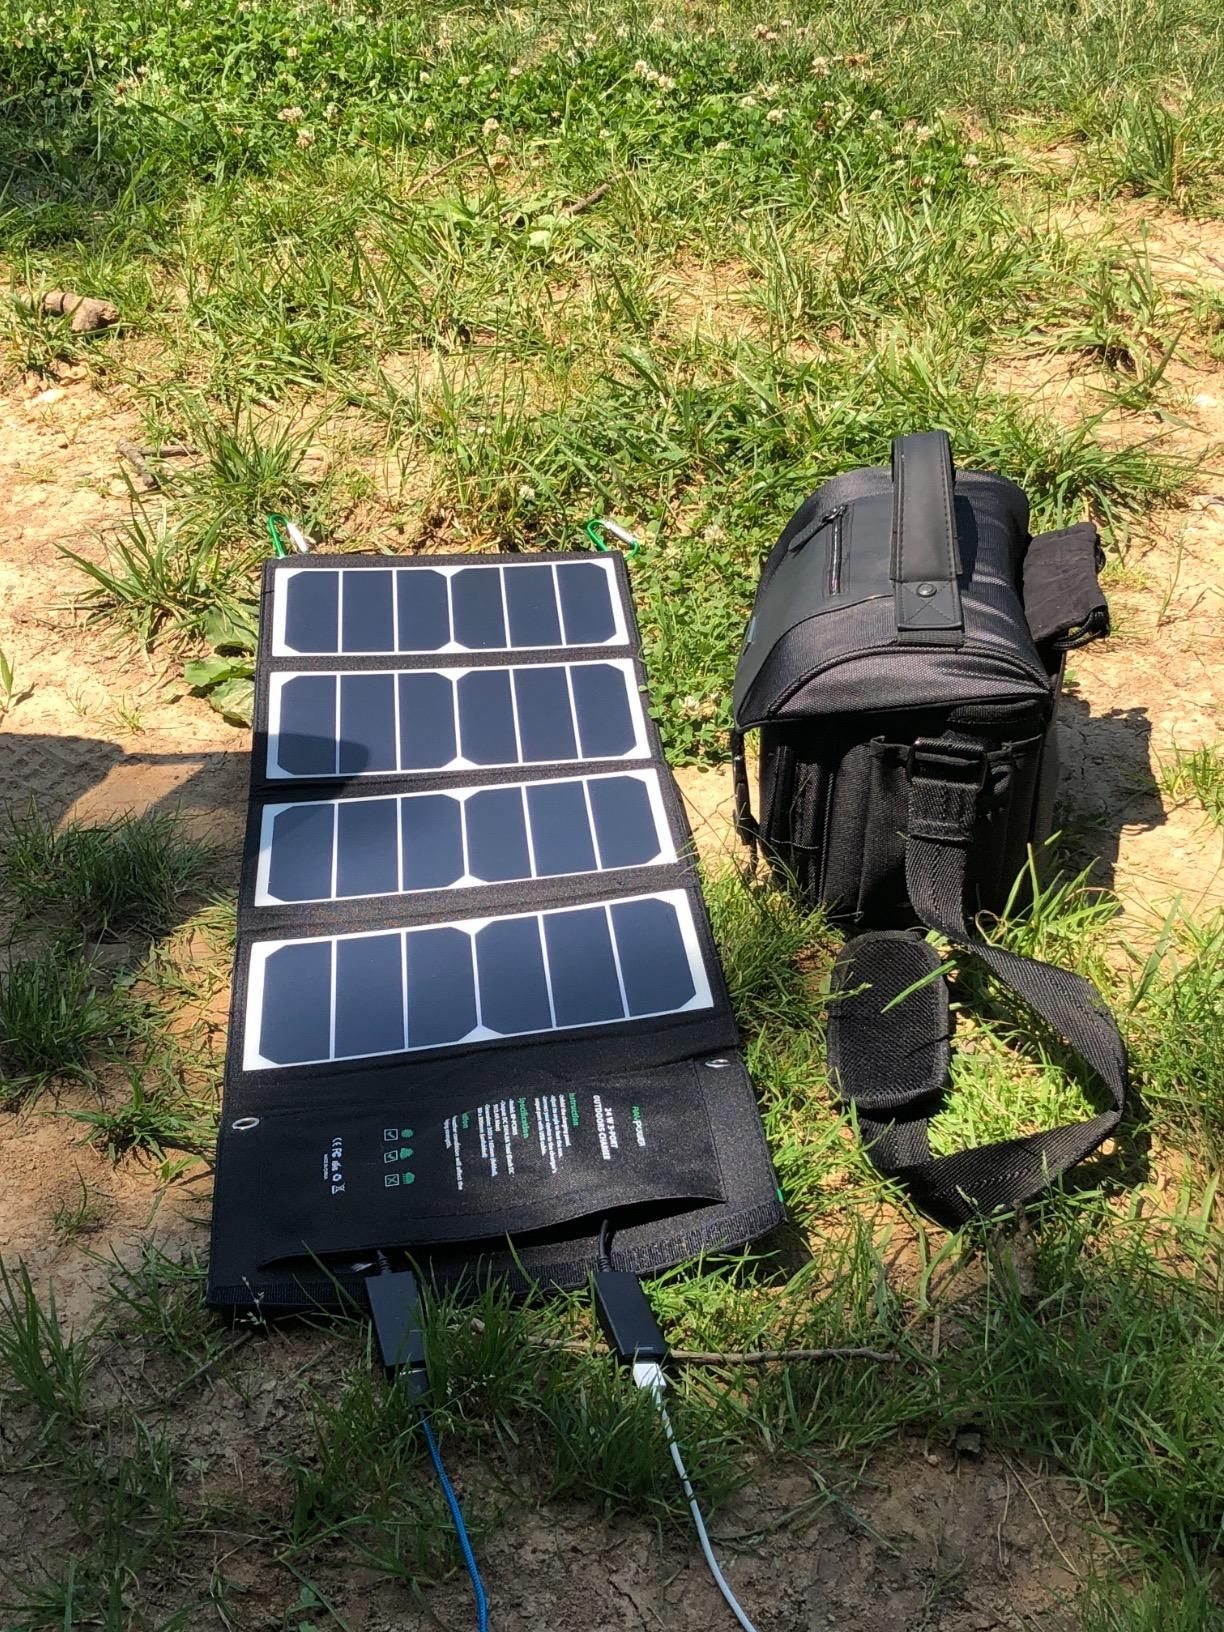 I Decided To Purchase The Ravpower 24w Solar Panel I Could Not Be Happier Super Durable And Very Responsive I Highly Re Solar Panels Best Solar Panels Solar